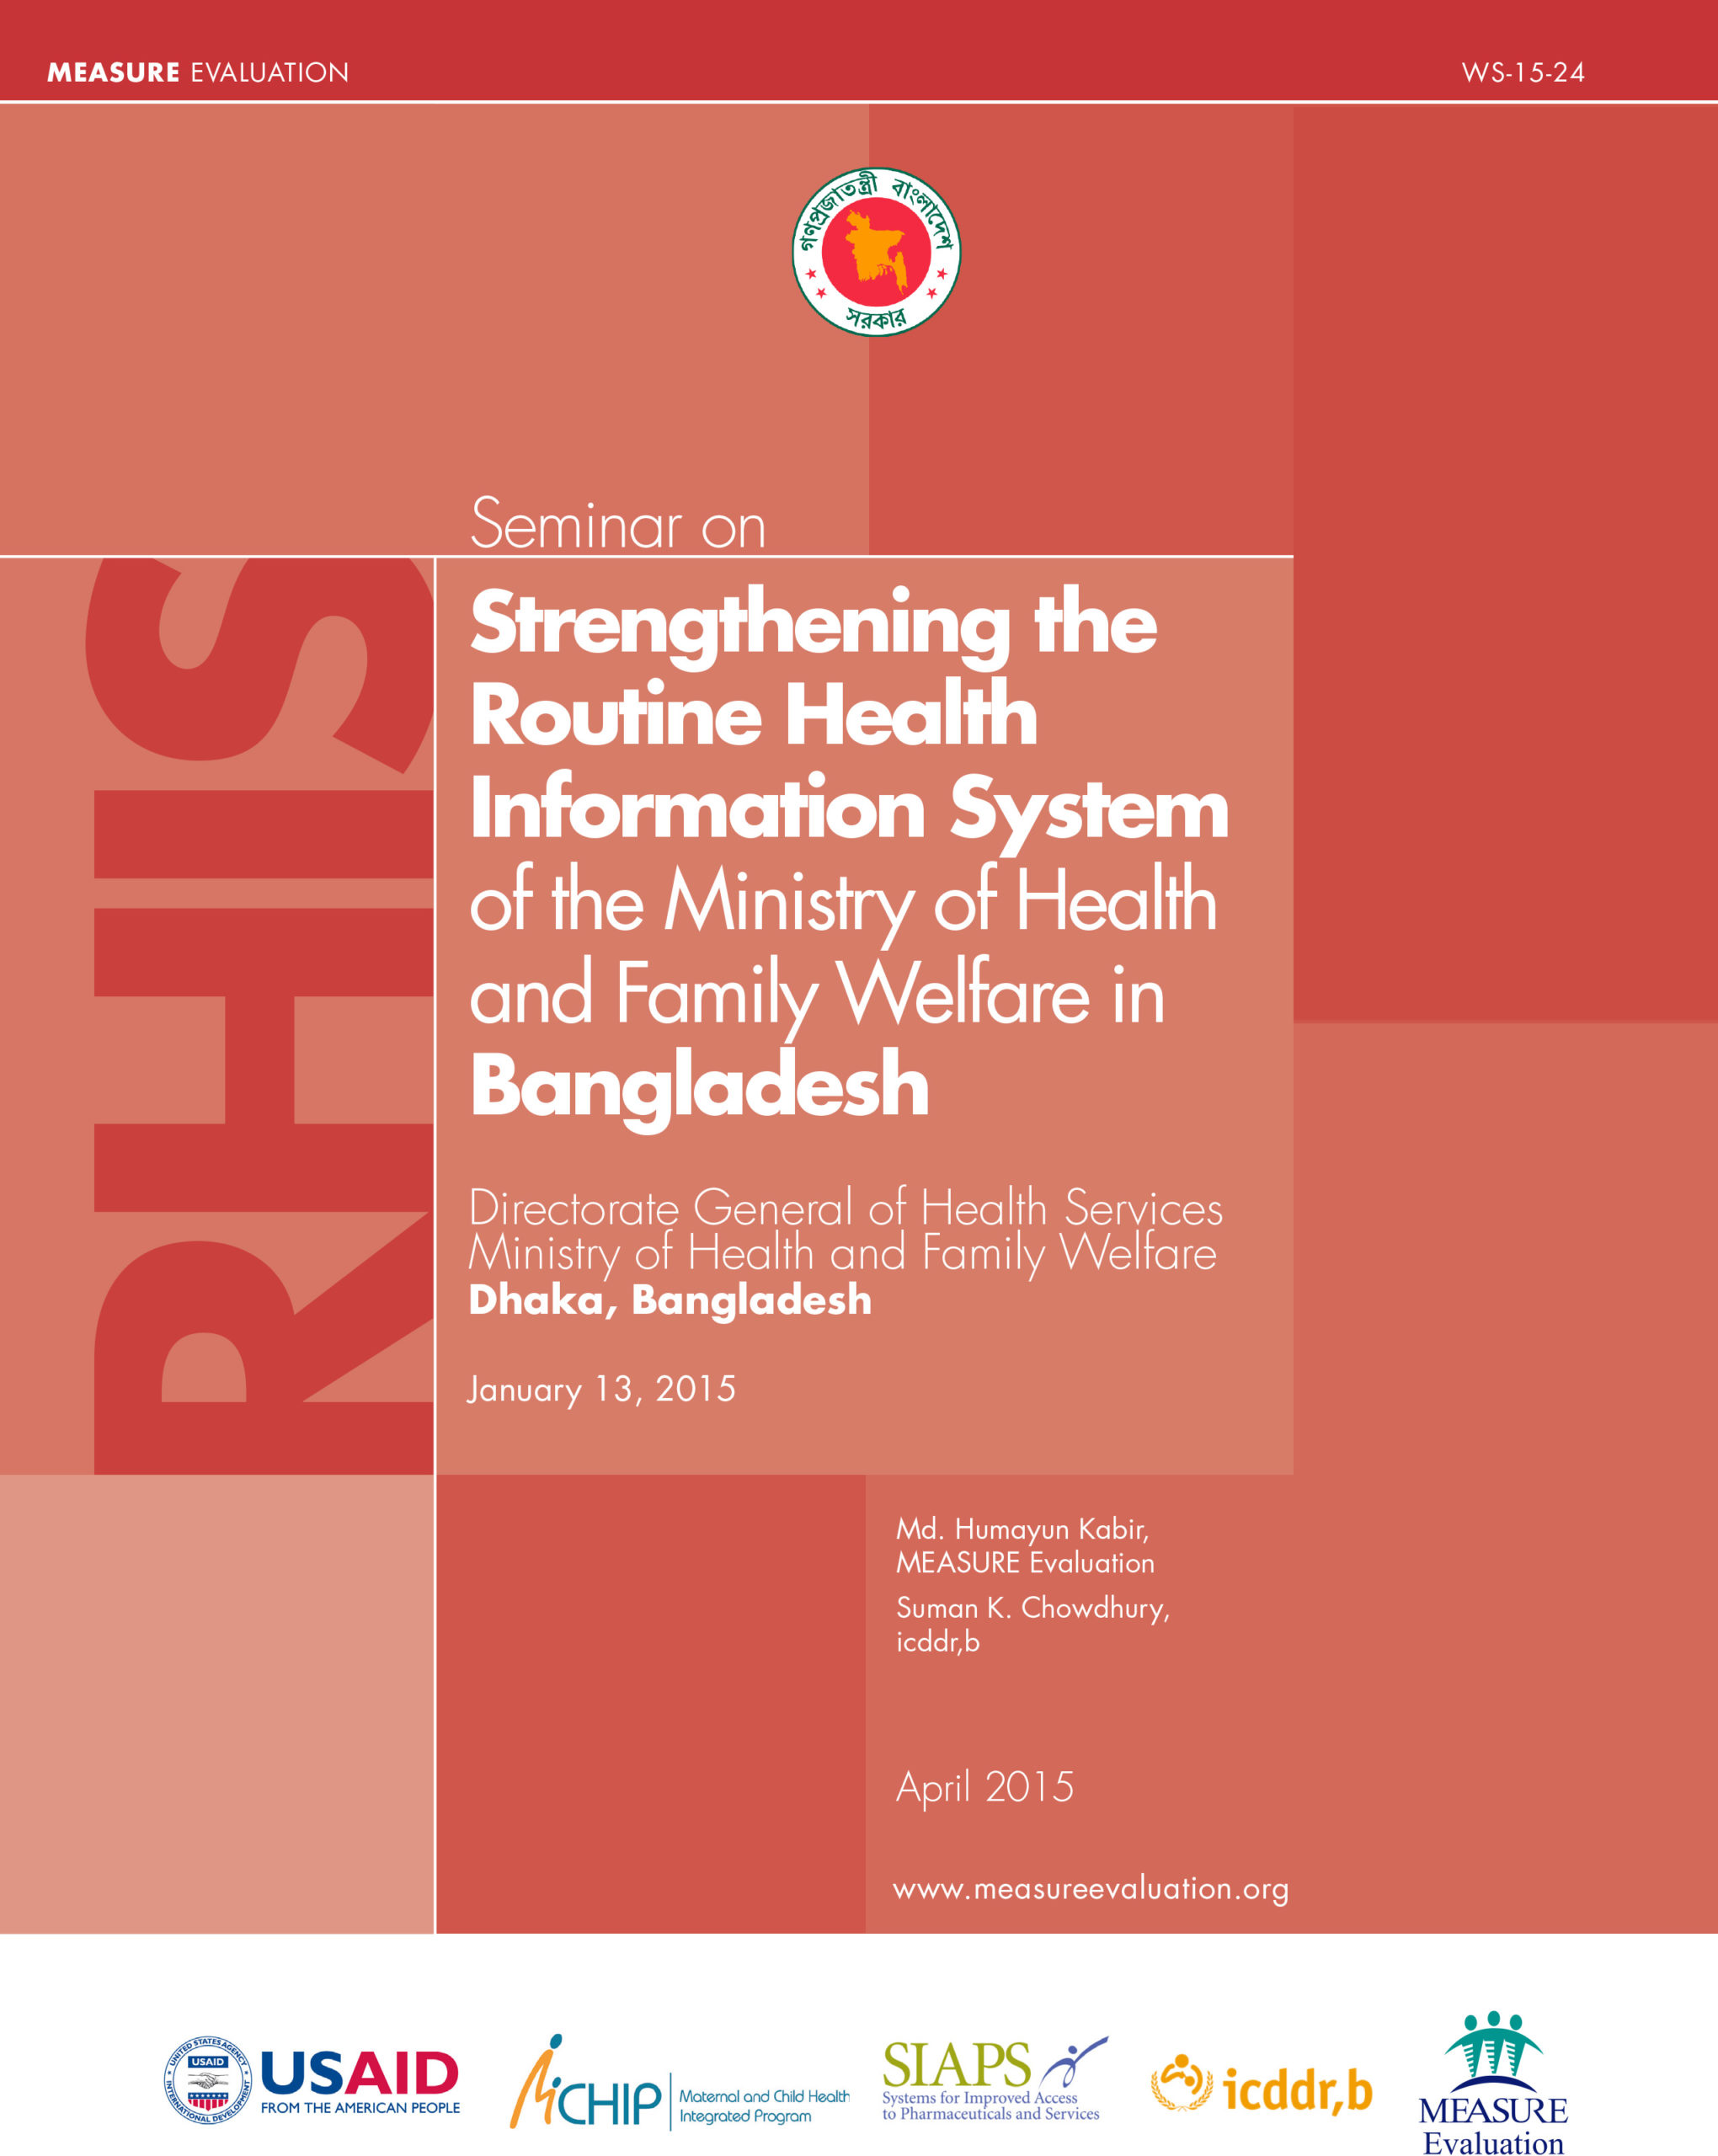 Seminar on Strengthening the Routine Health Information System of the Ministry of Health and Family Welfare in Bangladesh